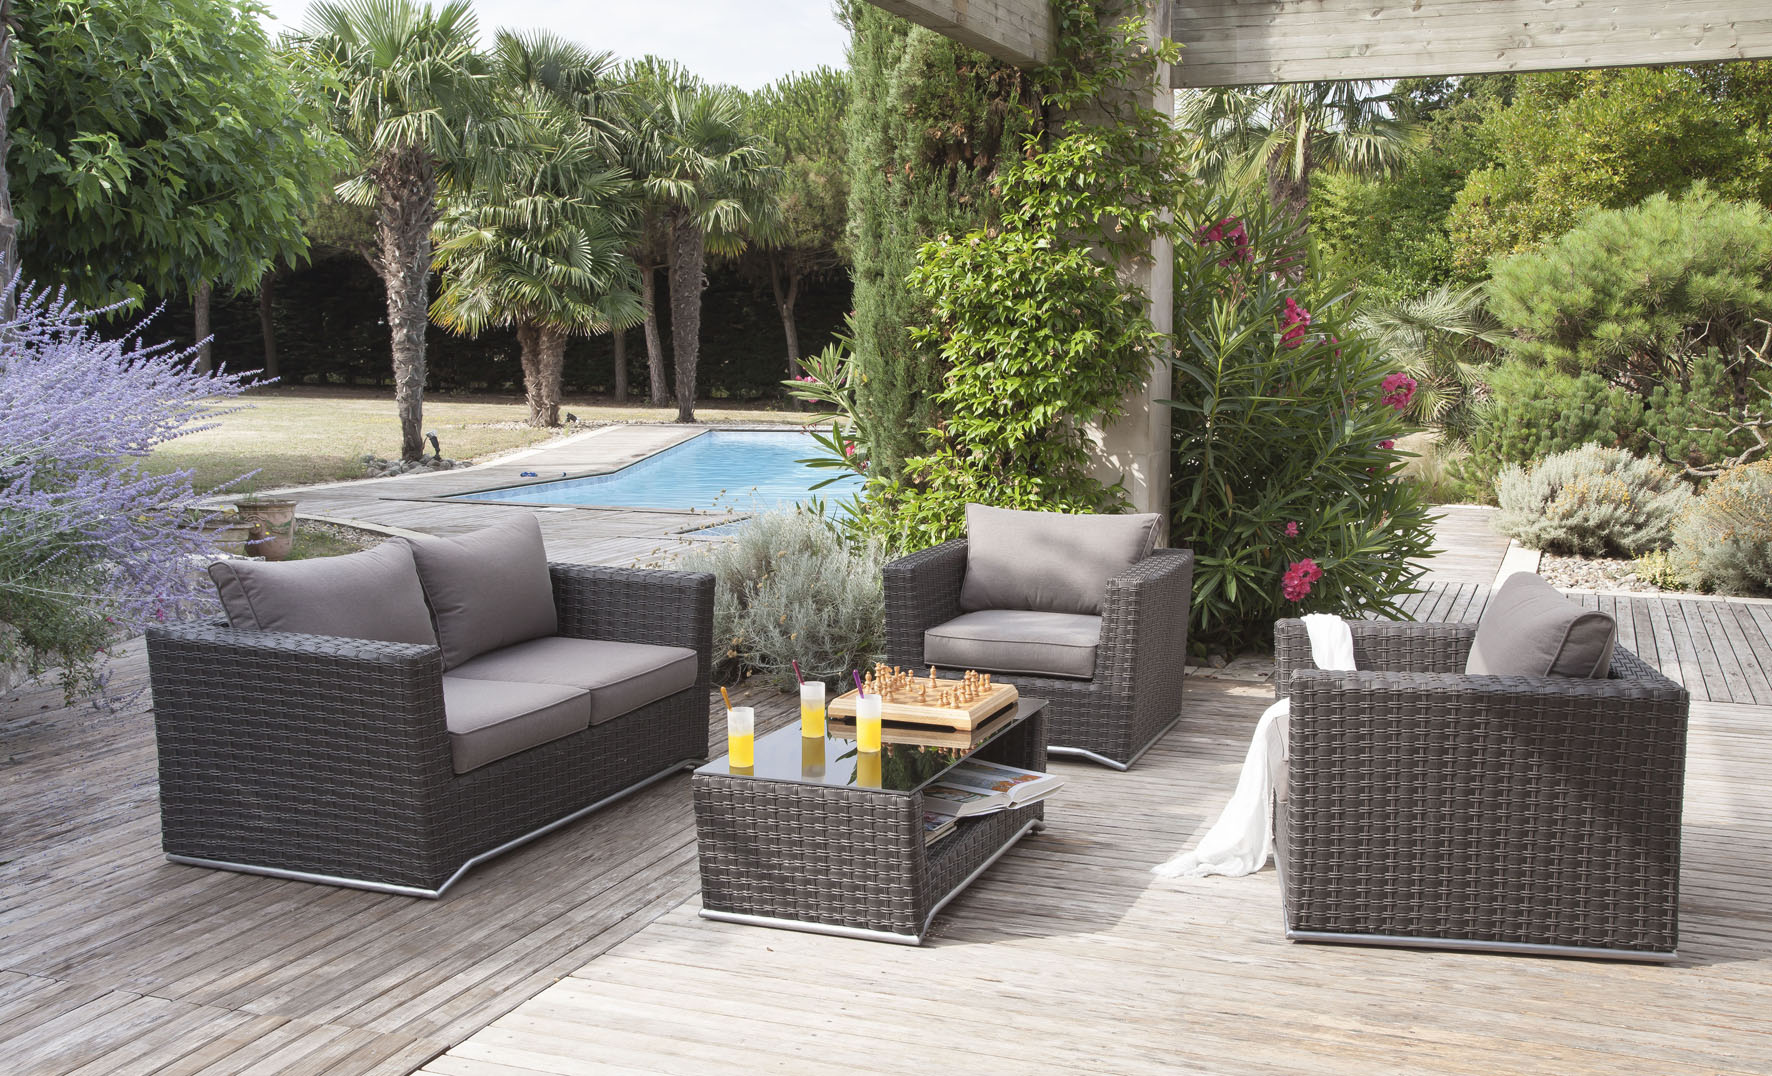 Outdoor la nouvelle collection proloisirs jacky la for Salon de jardin original